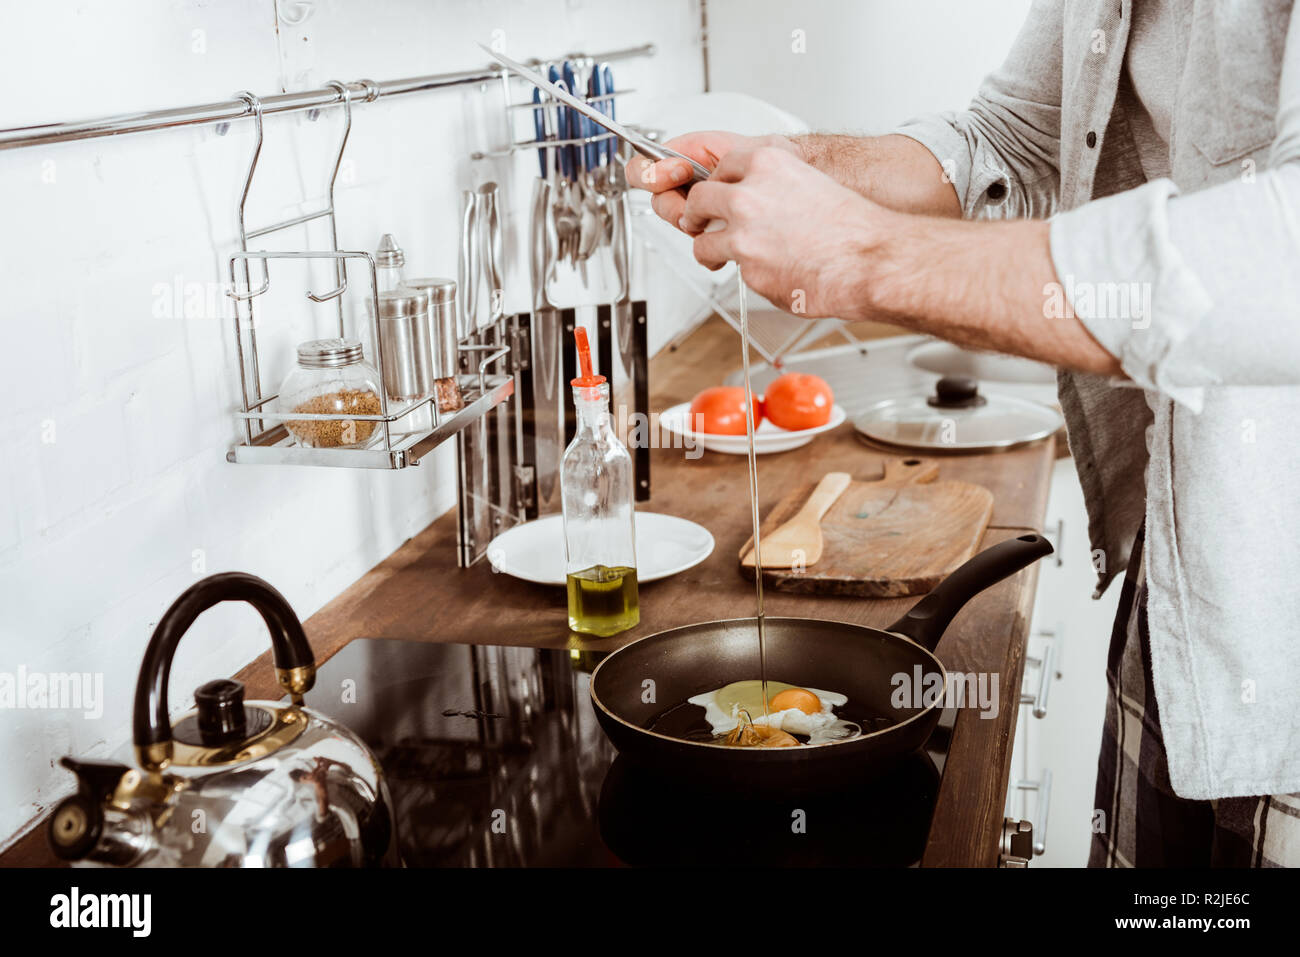 partial view of young man cooking scrambled eggs on breakfast in kitchen - Stock Image